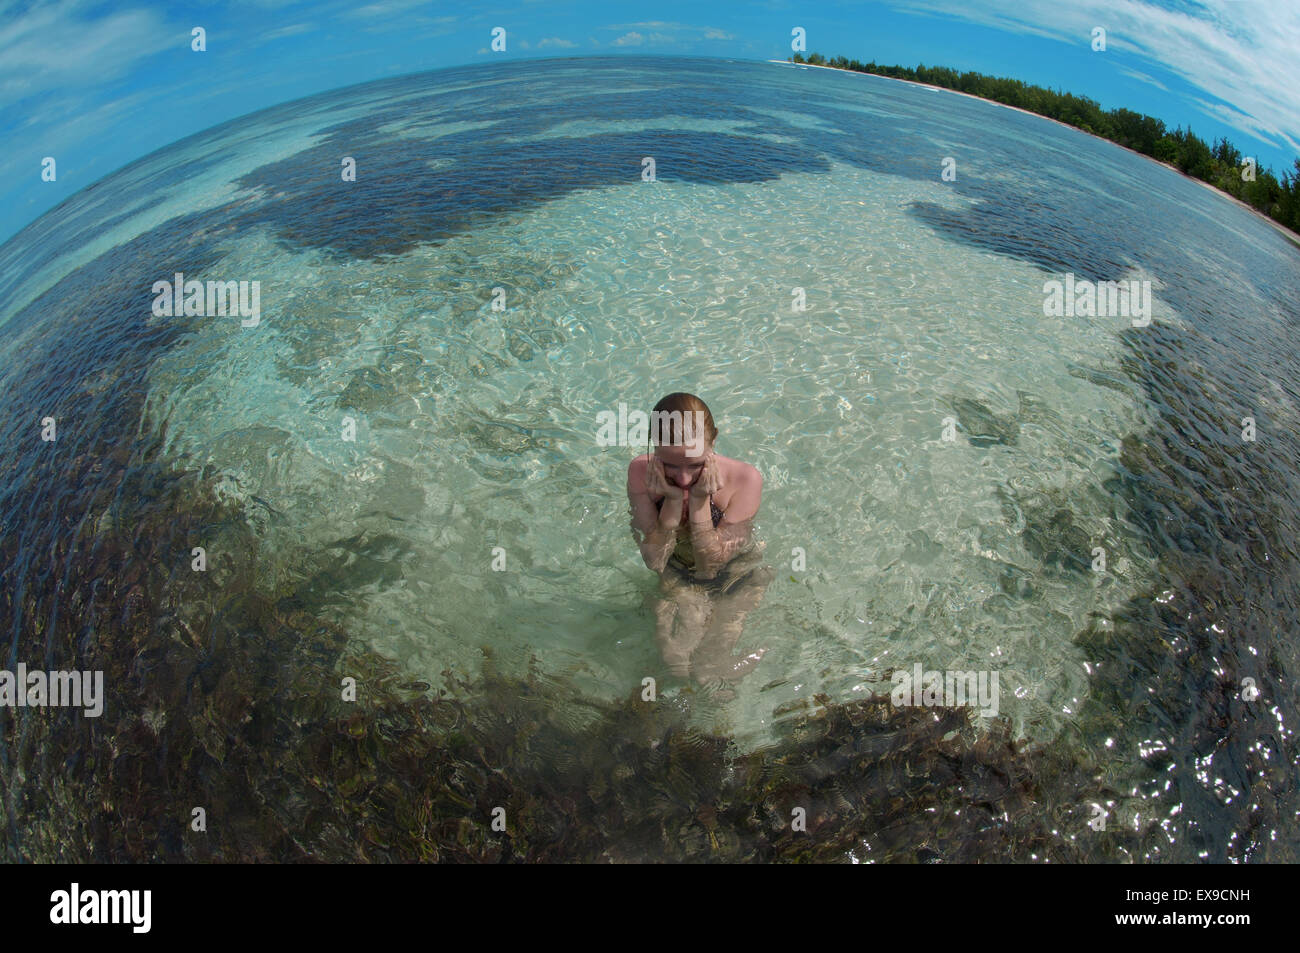 A young woman sits in water, Denis island, Indian Ocean, Seychelles Stock Photo